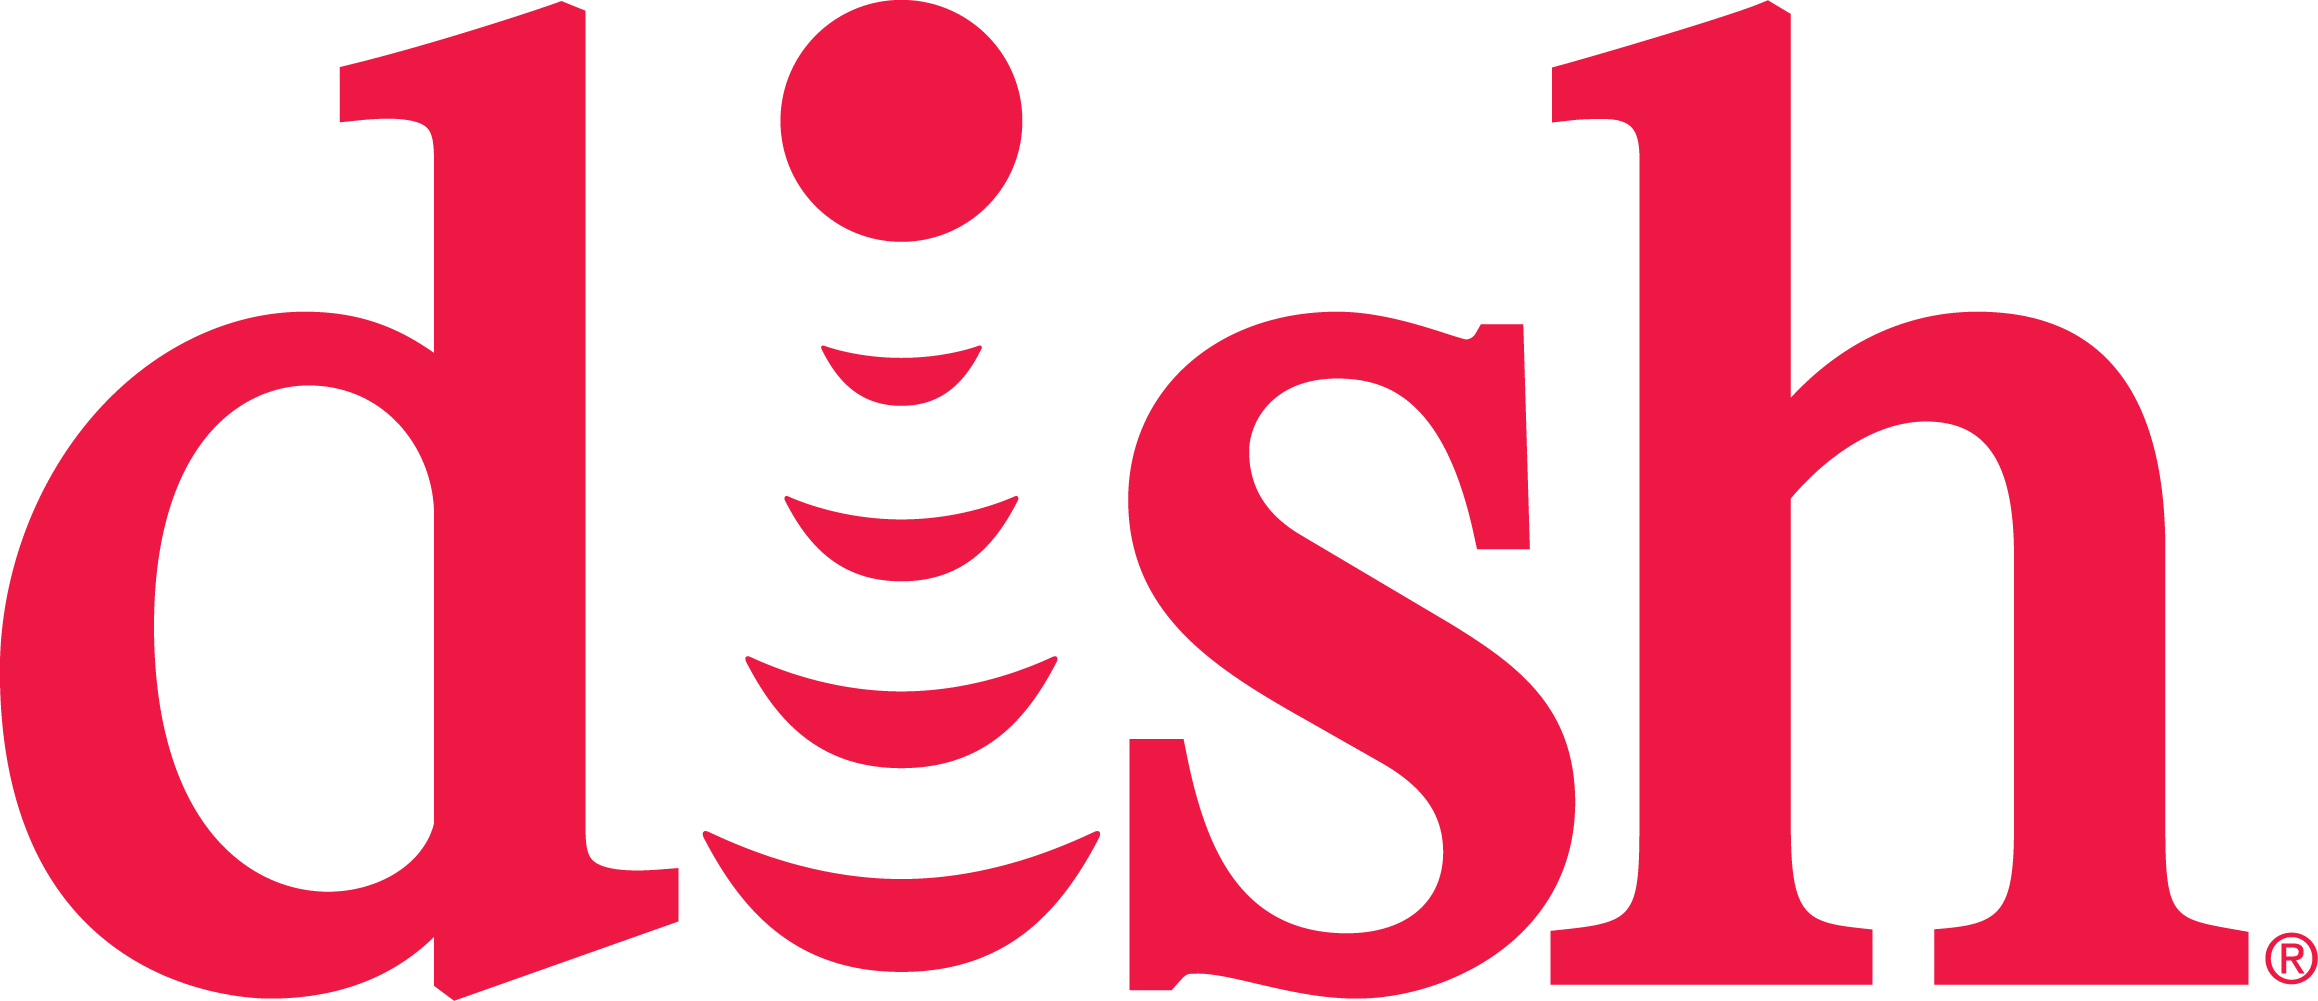 $49.99/MonthsAmerica's Top 120 Plus Package @ Dish Network